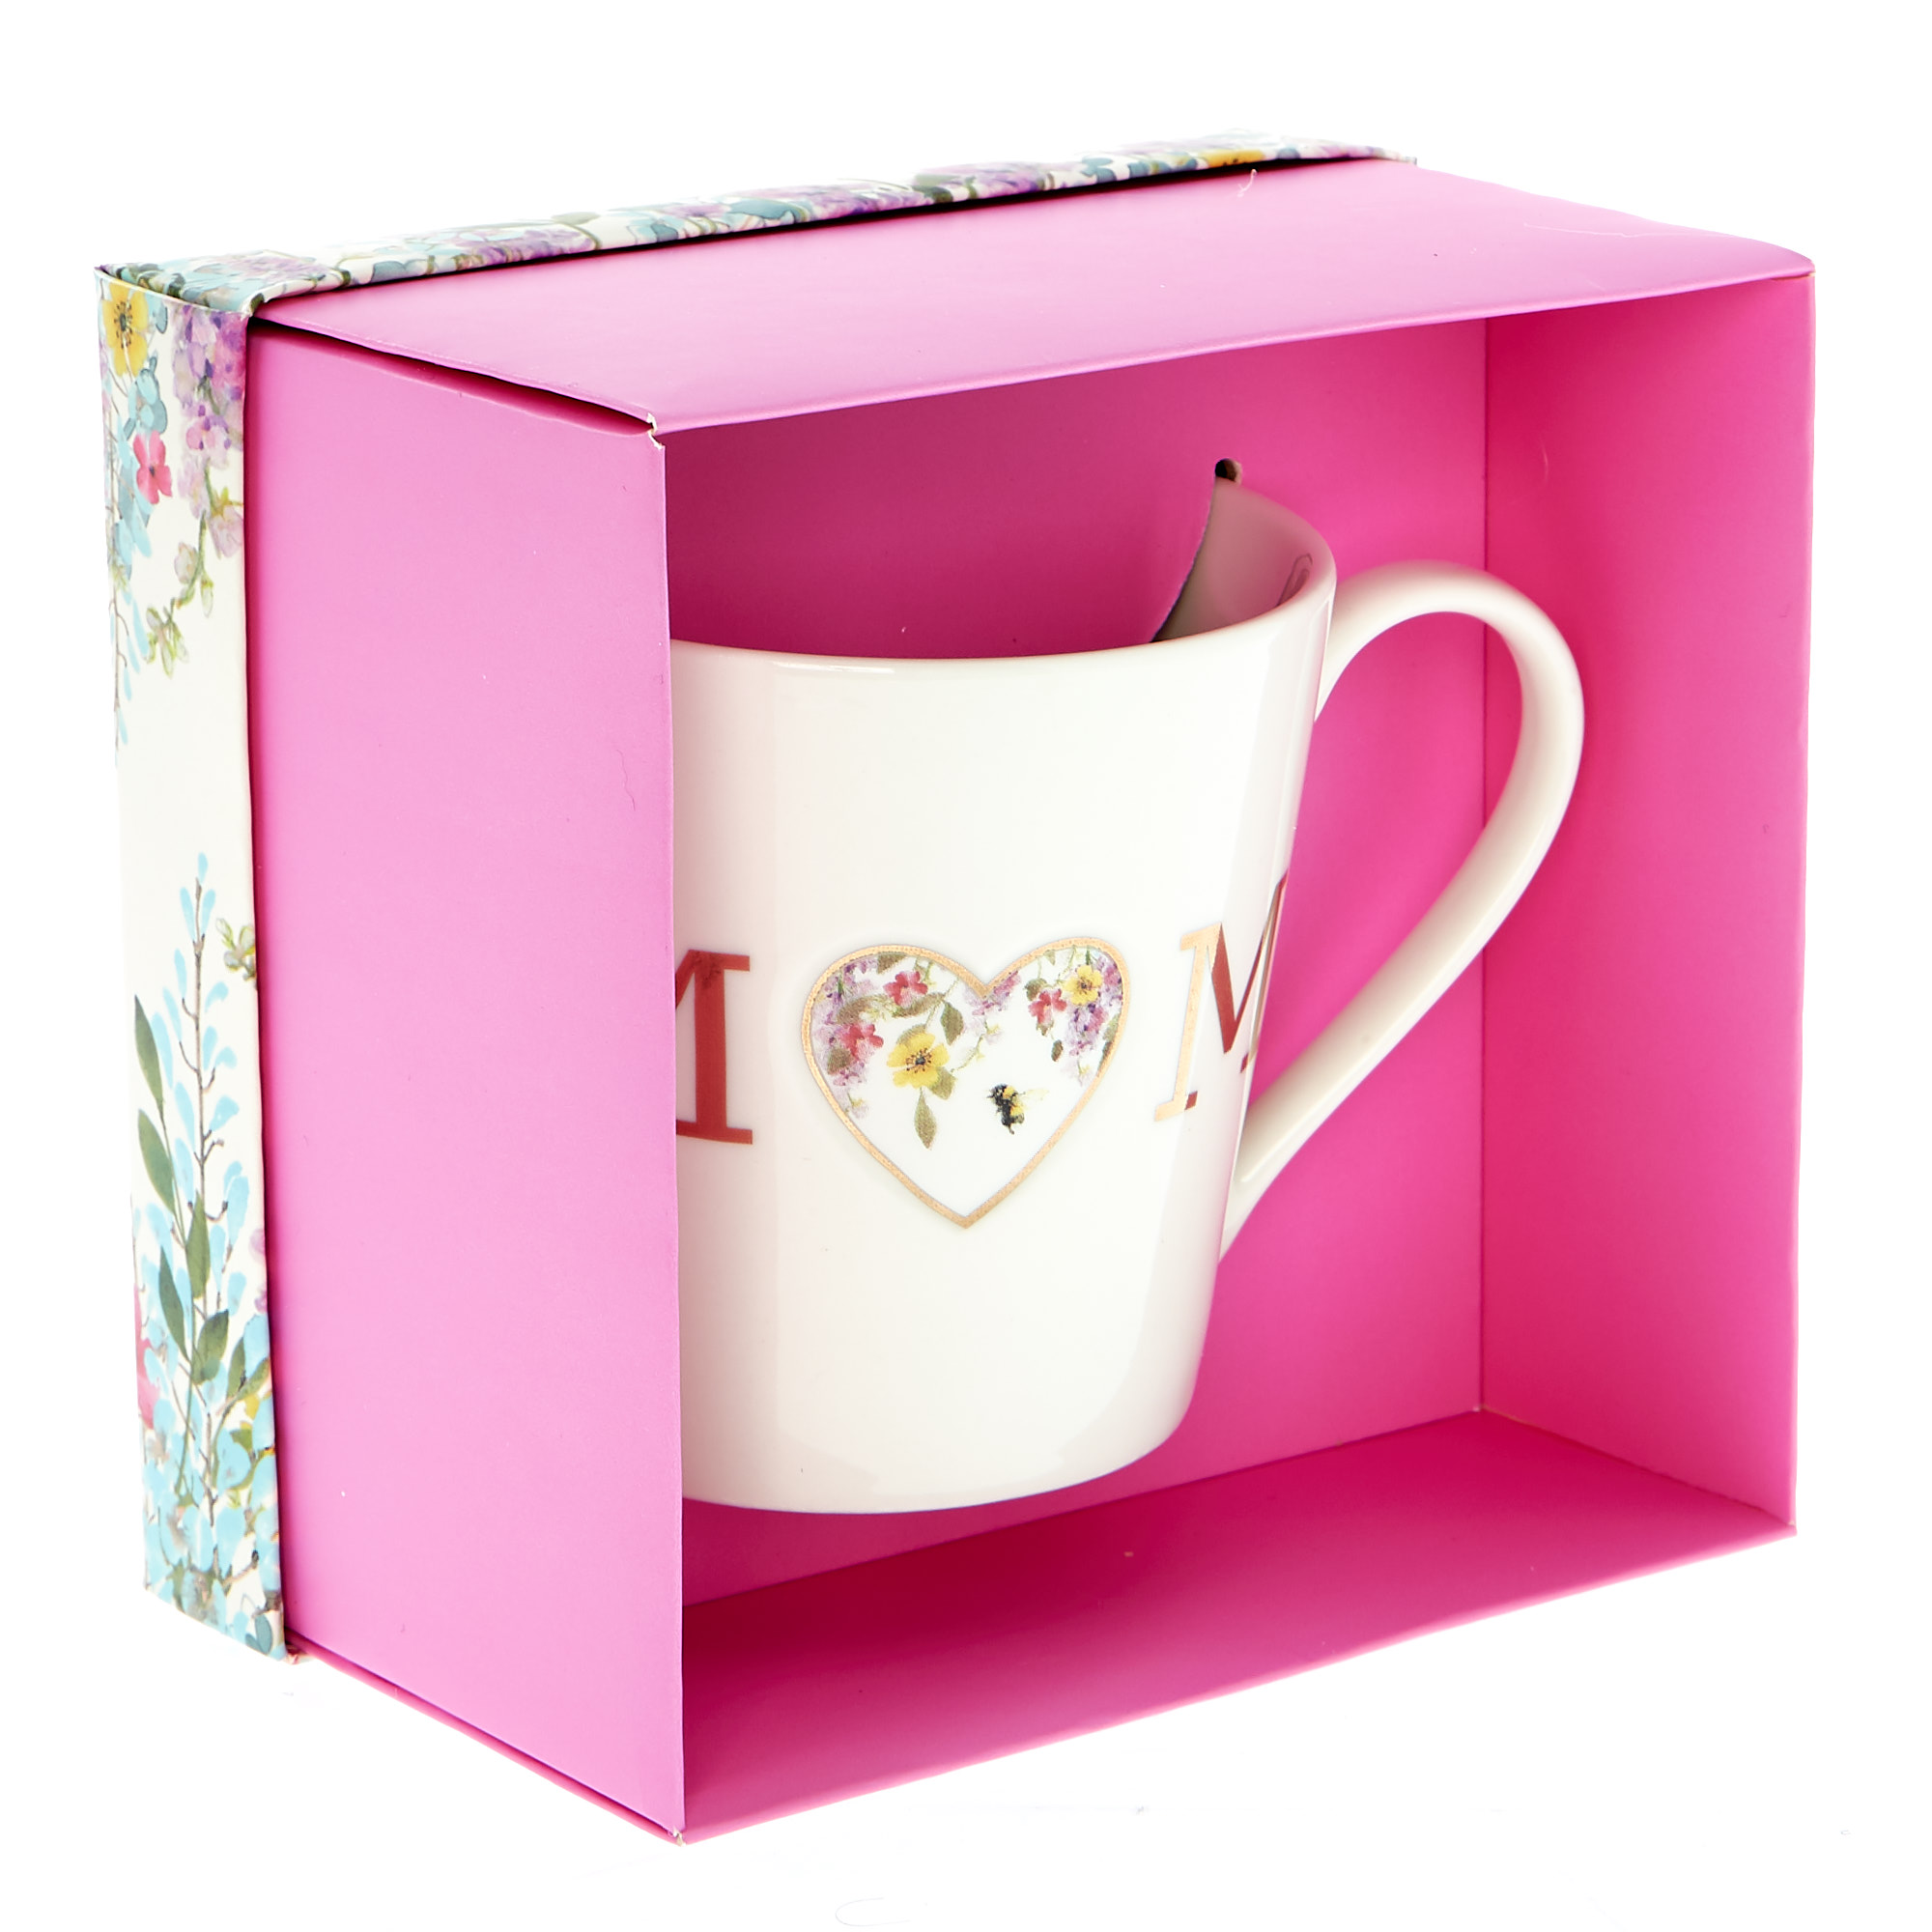 Sentimental MUM Mug In A Box